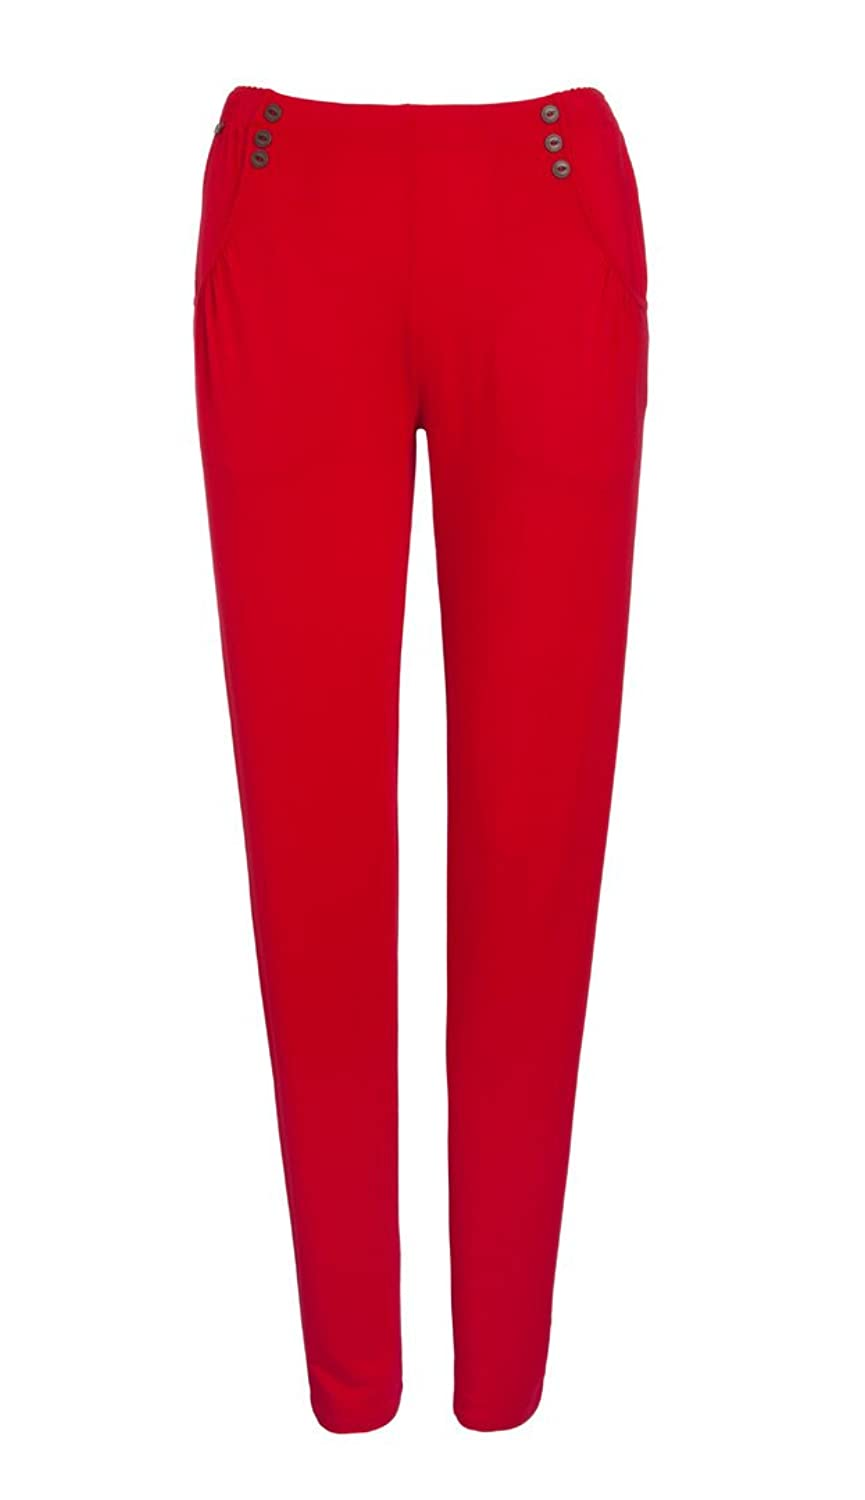 Jockey 850007 Damen Pants XS (34) bis 2XL (44) Doppelpack